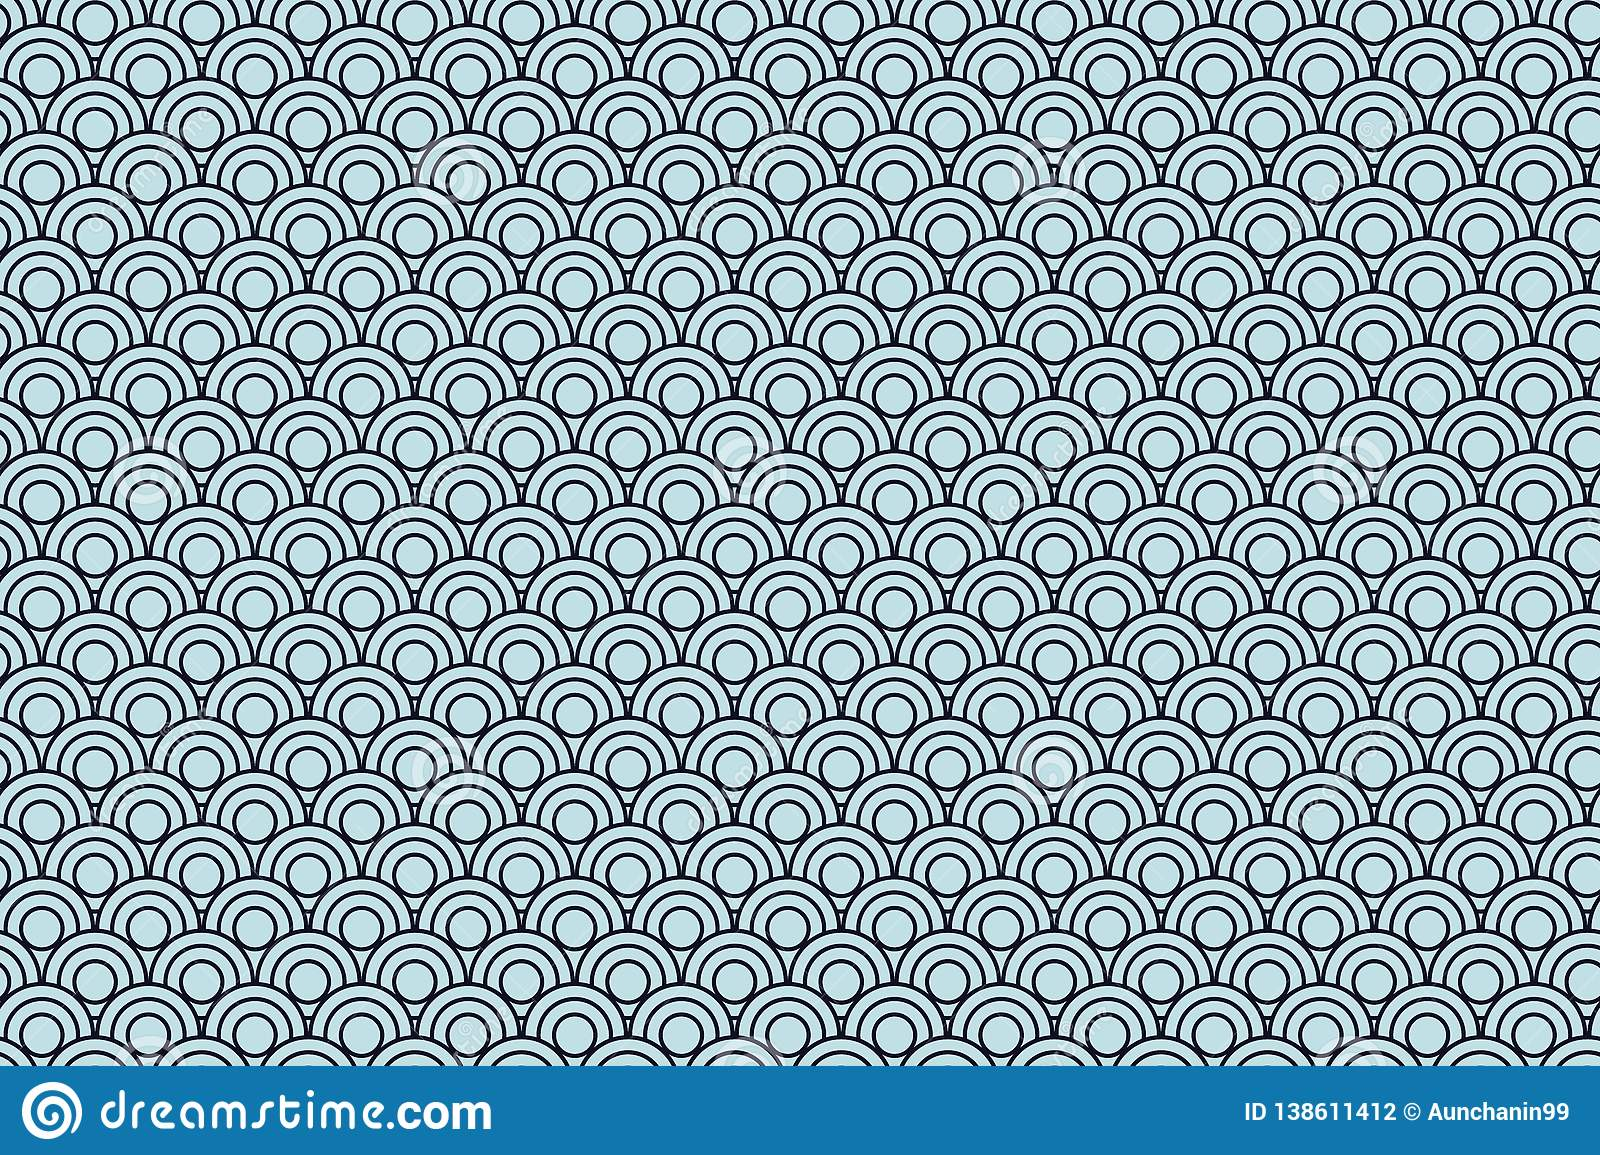 Wave pattern background